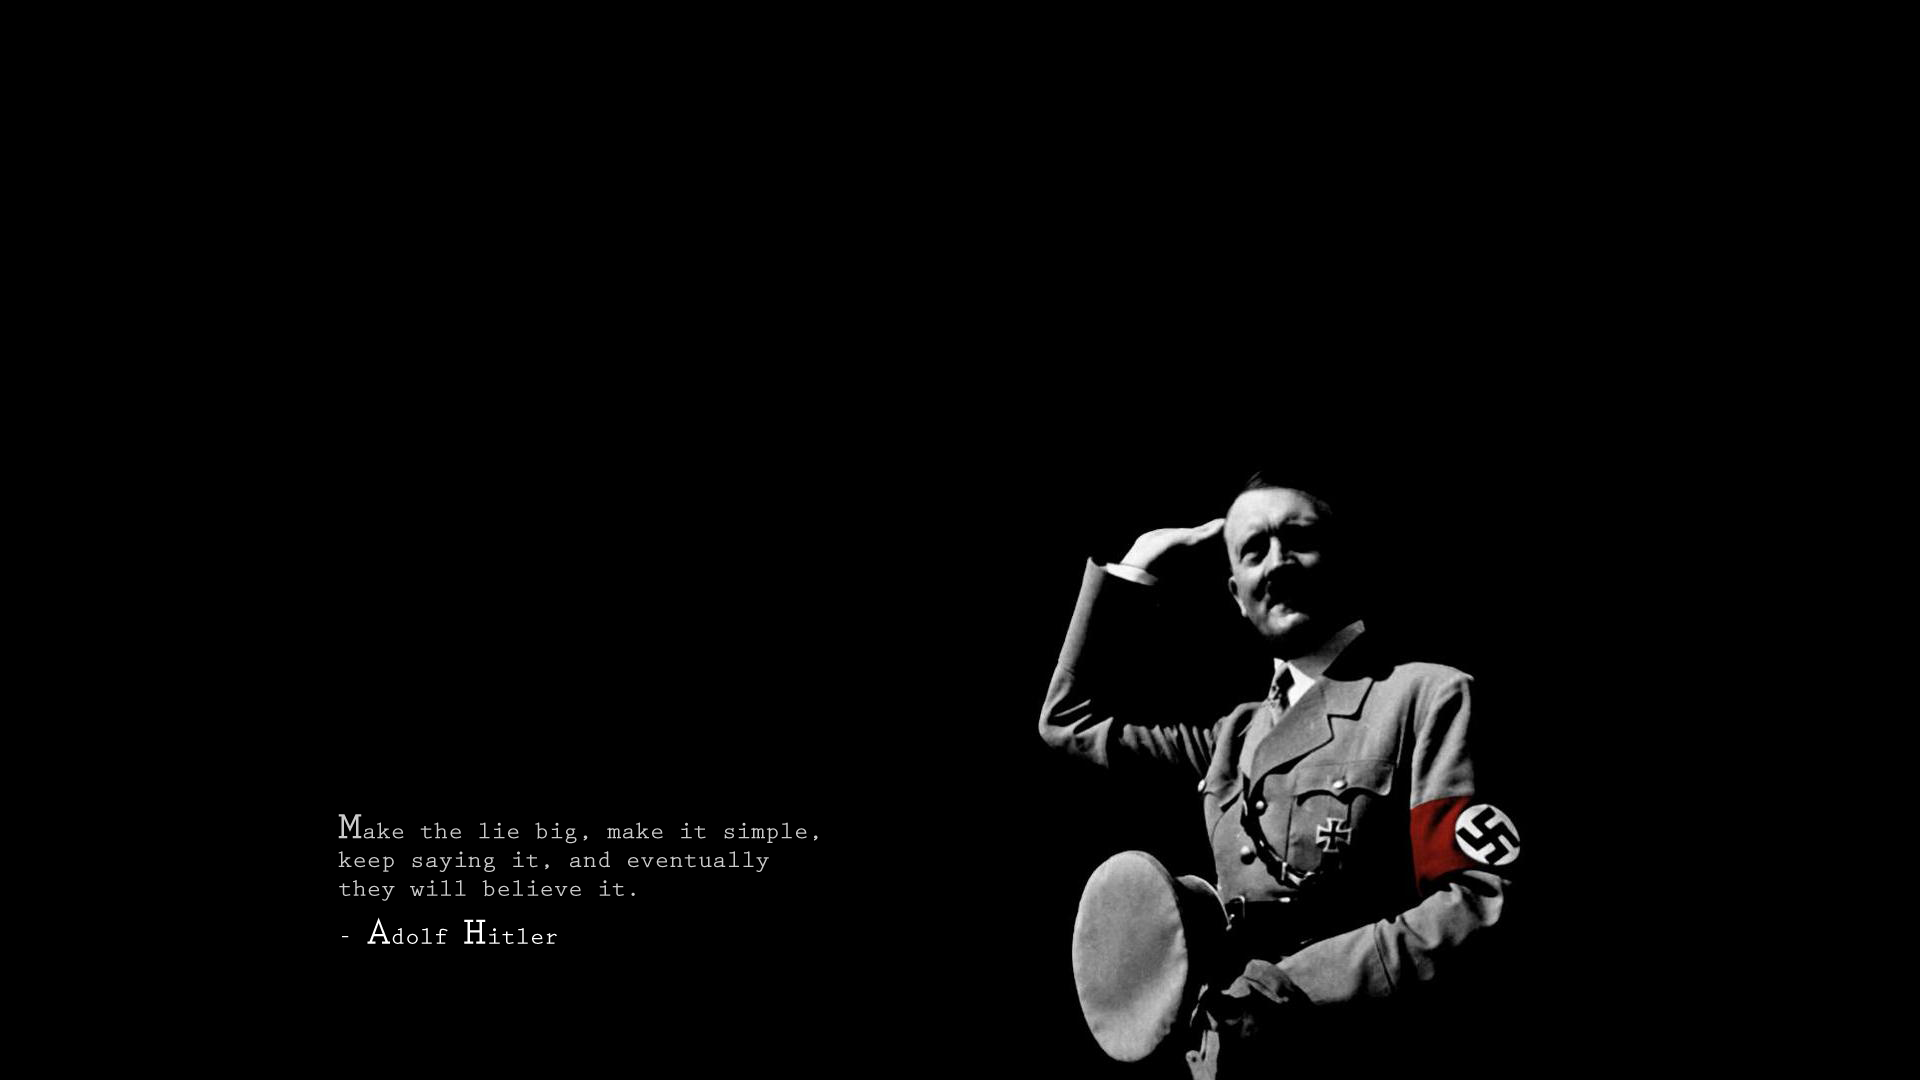 18 nazi hd wallpapers - photo #28